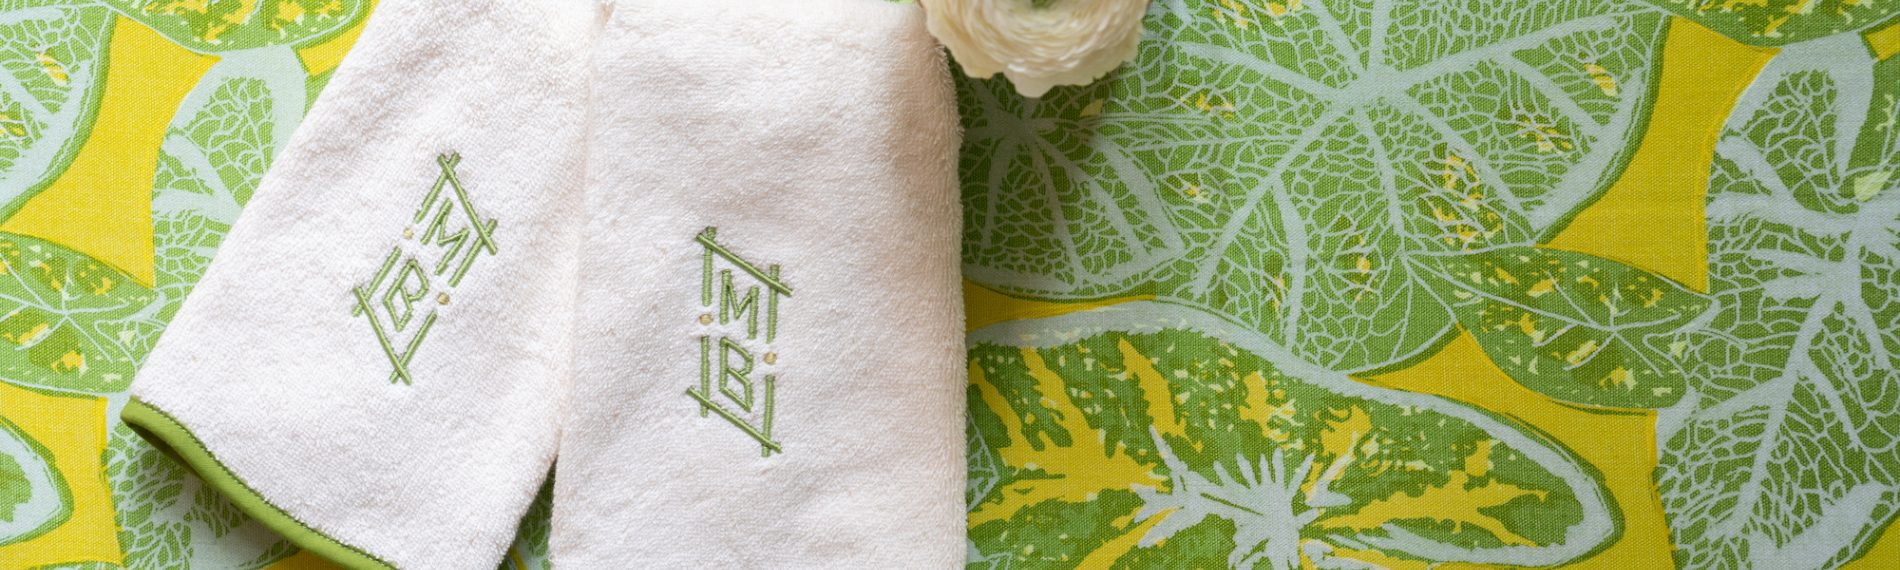 Modern linens made to last towels